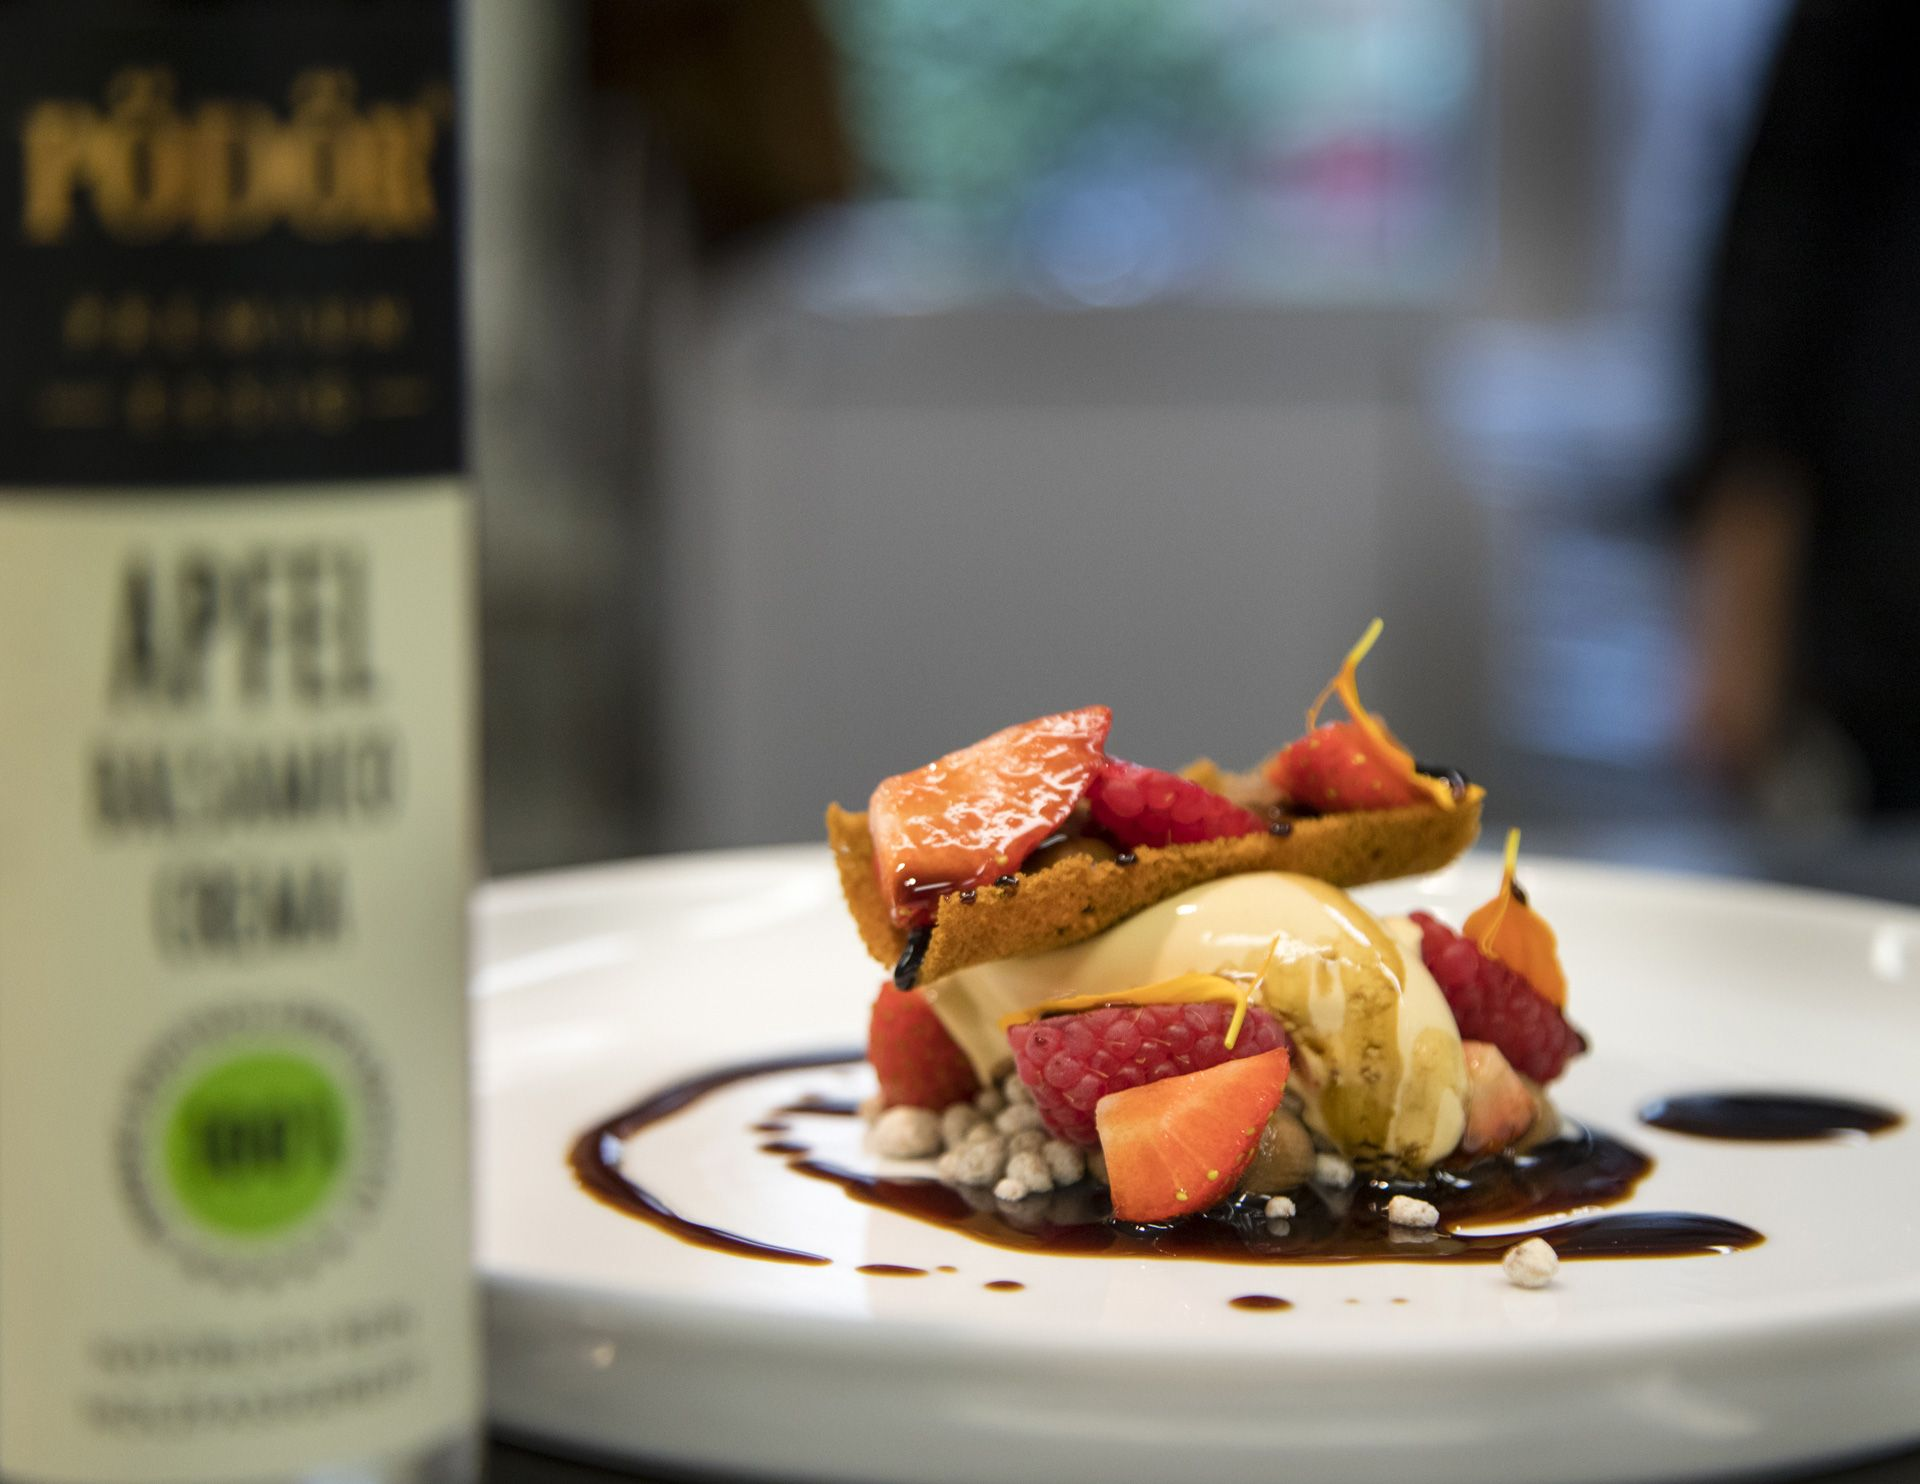 PÖDÖR's Apple Balsamico Crema owes its extremely intense aroma to five years of ageing in wooden barrels. The thick, visually appealing thread also creates beautiful accents on the food.